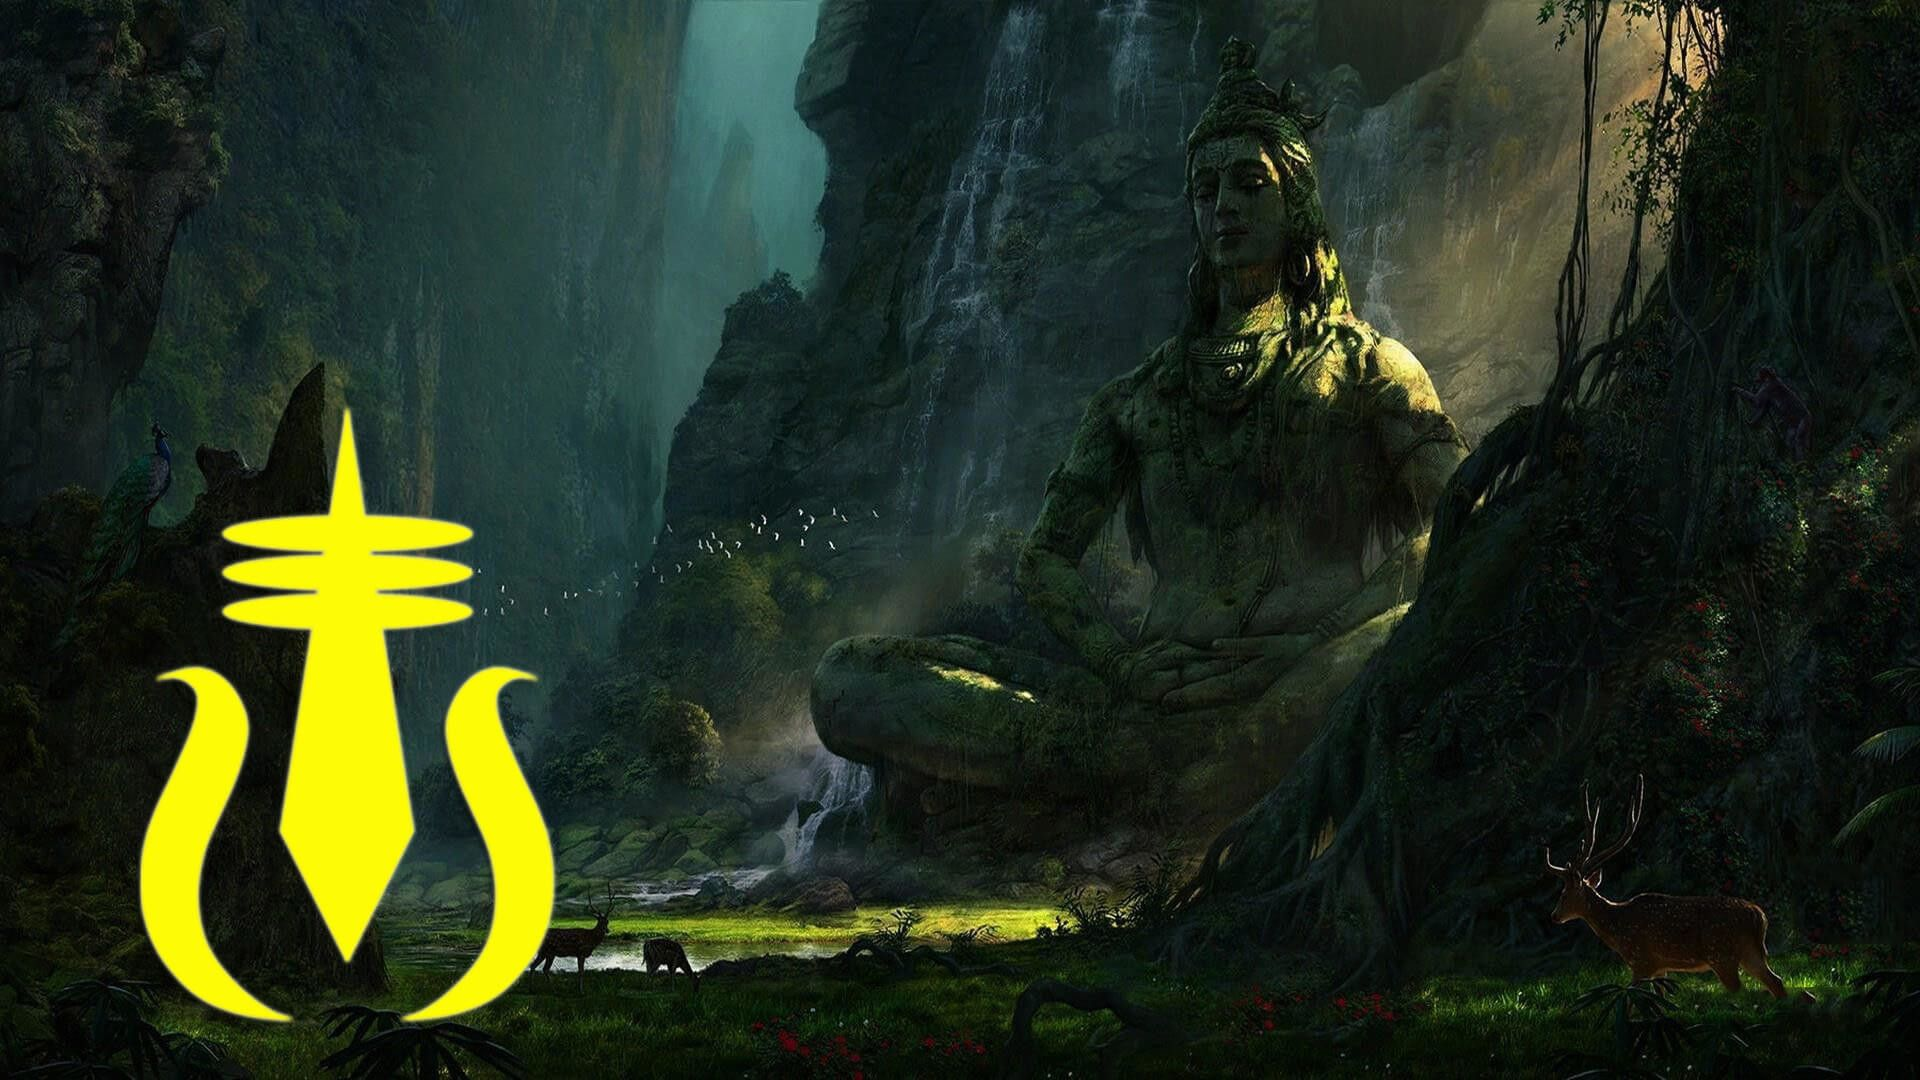 1920x1080 Download Hd Wallpapers For Pc 1920a 1080 Lord Shiva Hd Wallpapers For Pc Shiva Wallpaper Shivratri Wallpaper